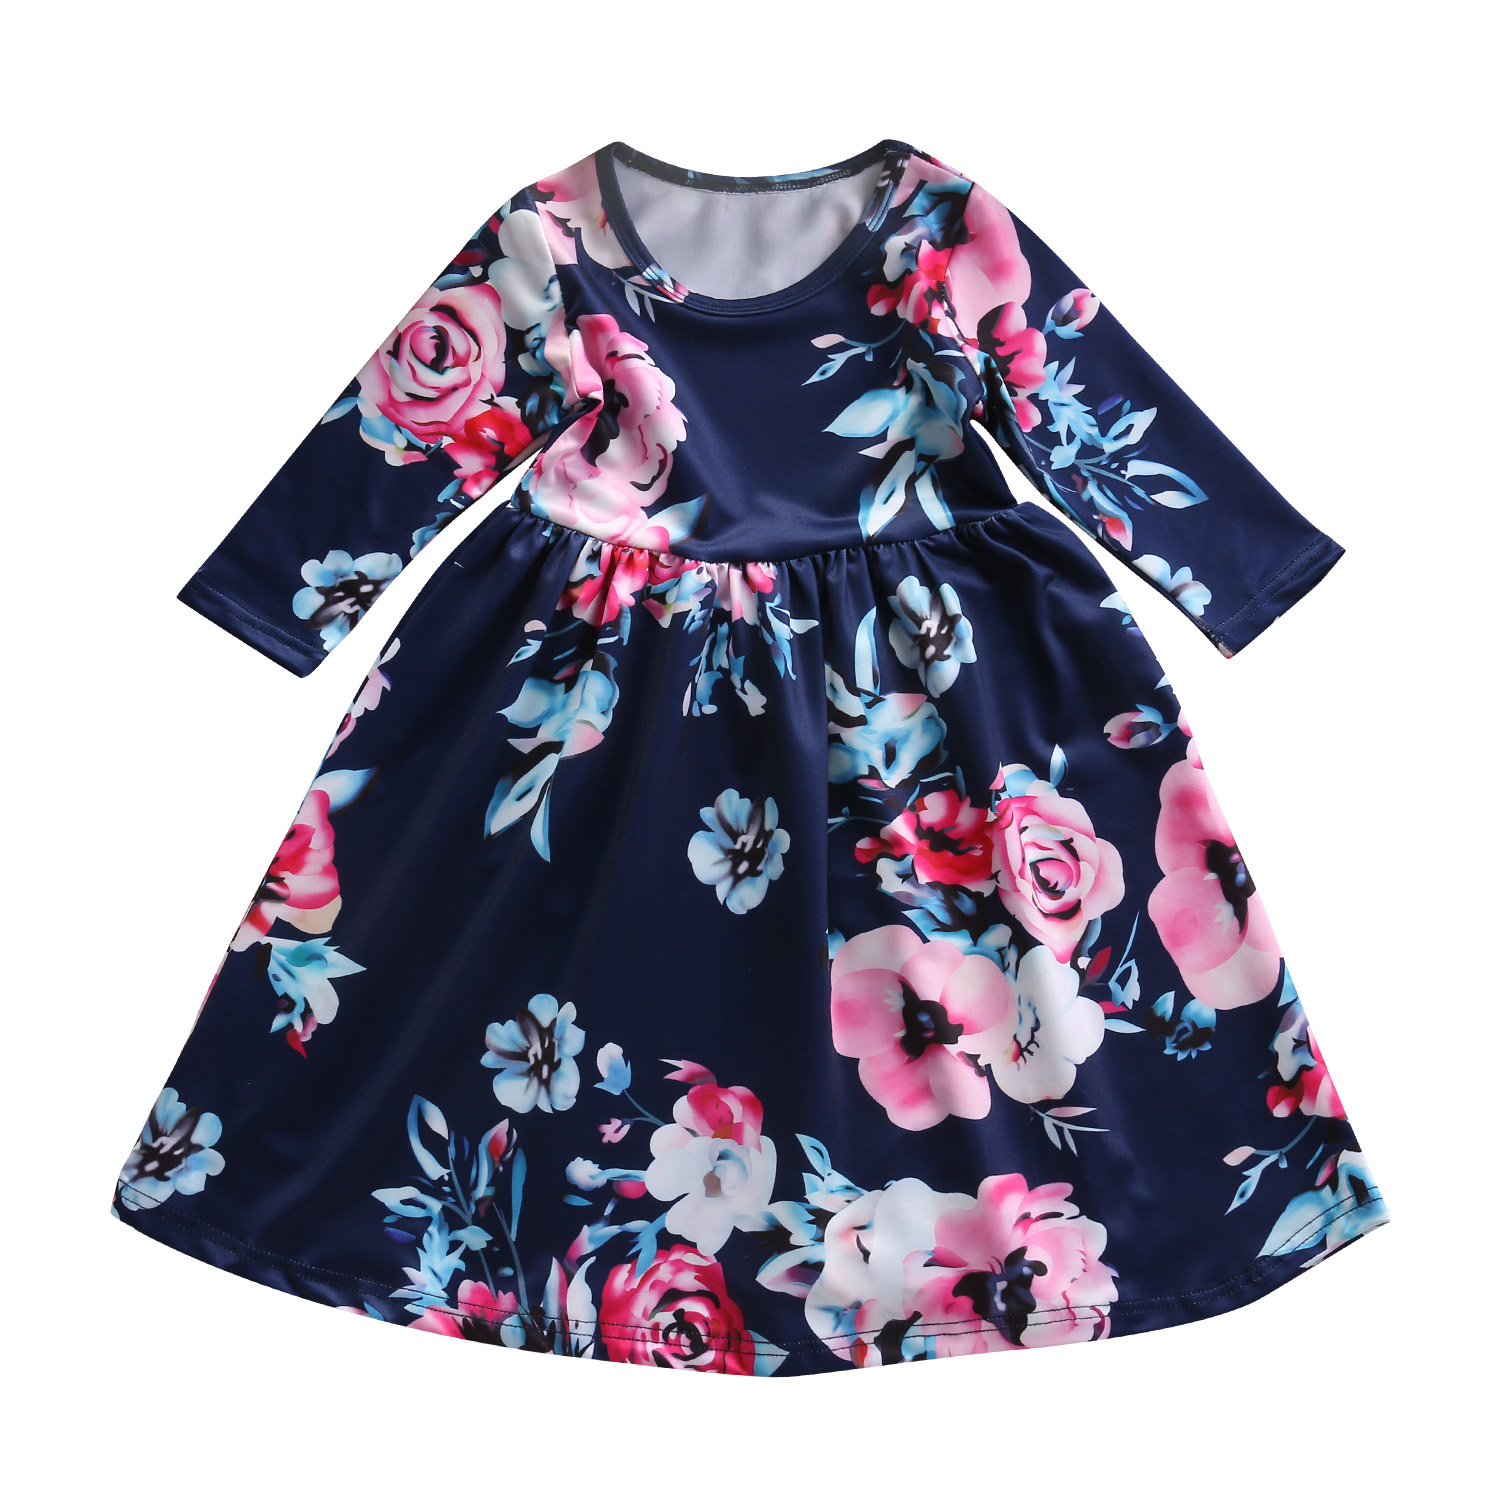 2017 Hot Sale Autumn Warm Floral Baby Girls Cotton Dress Toddler Kids Girls Long Sleeve Princess Dress Tutu Dresses 3 Color warm thicken baby rompers long sleeve organic cotton autumn